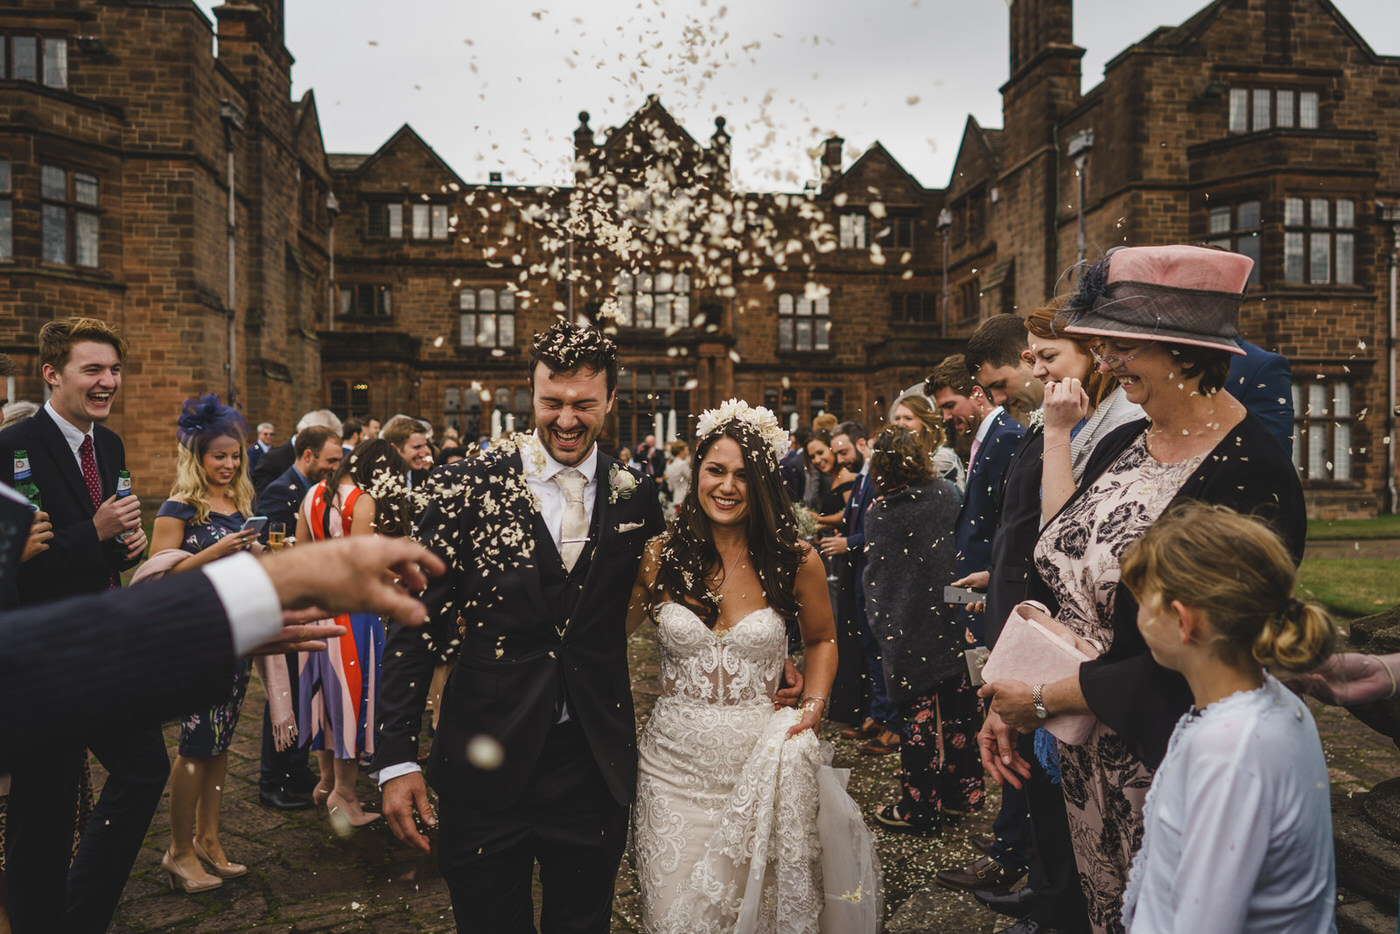 the happy couple are covered in confetti by their guests at Thornton Manor